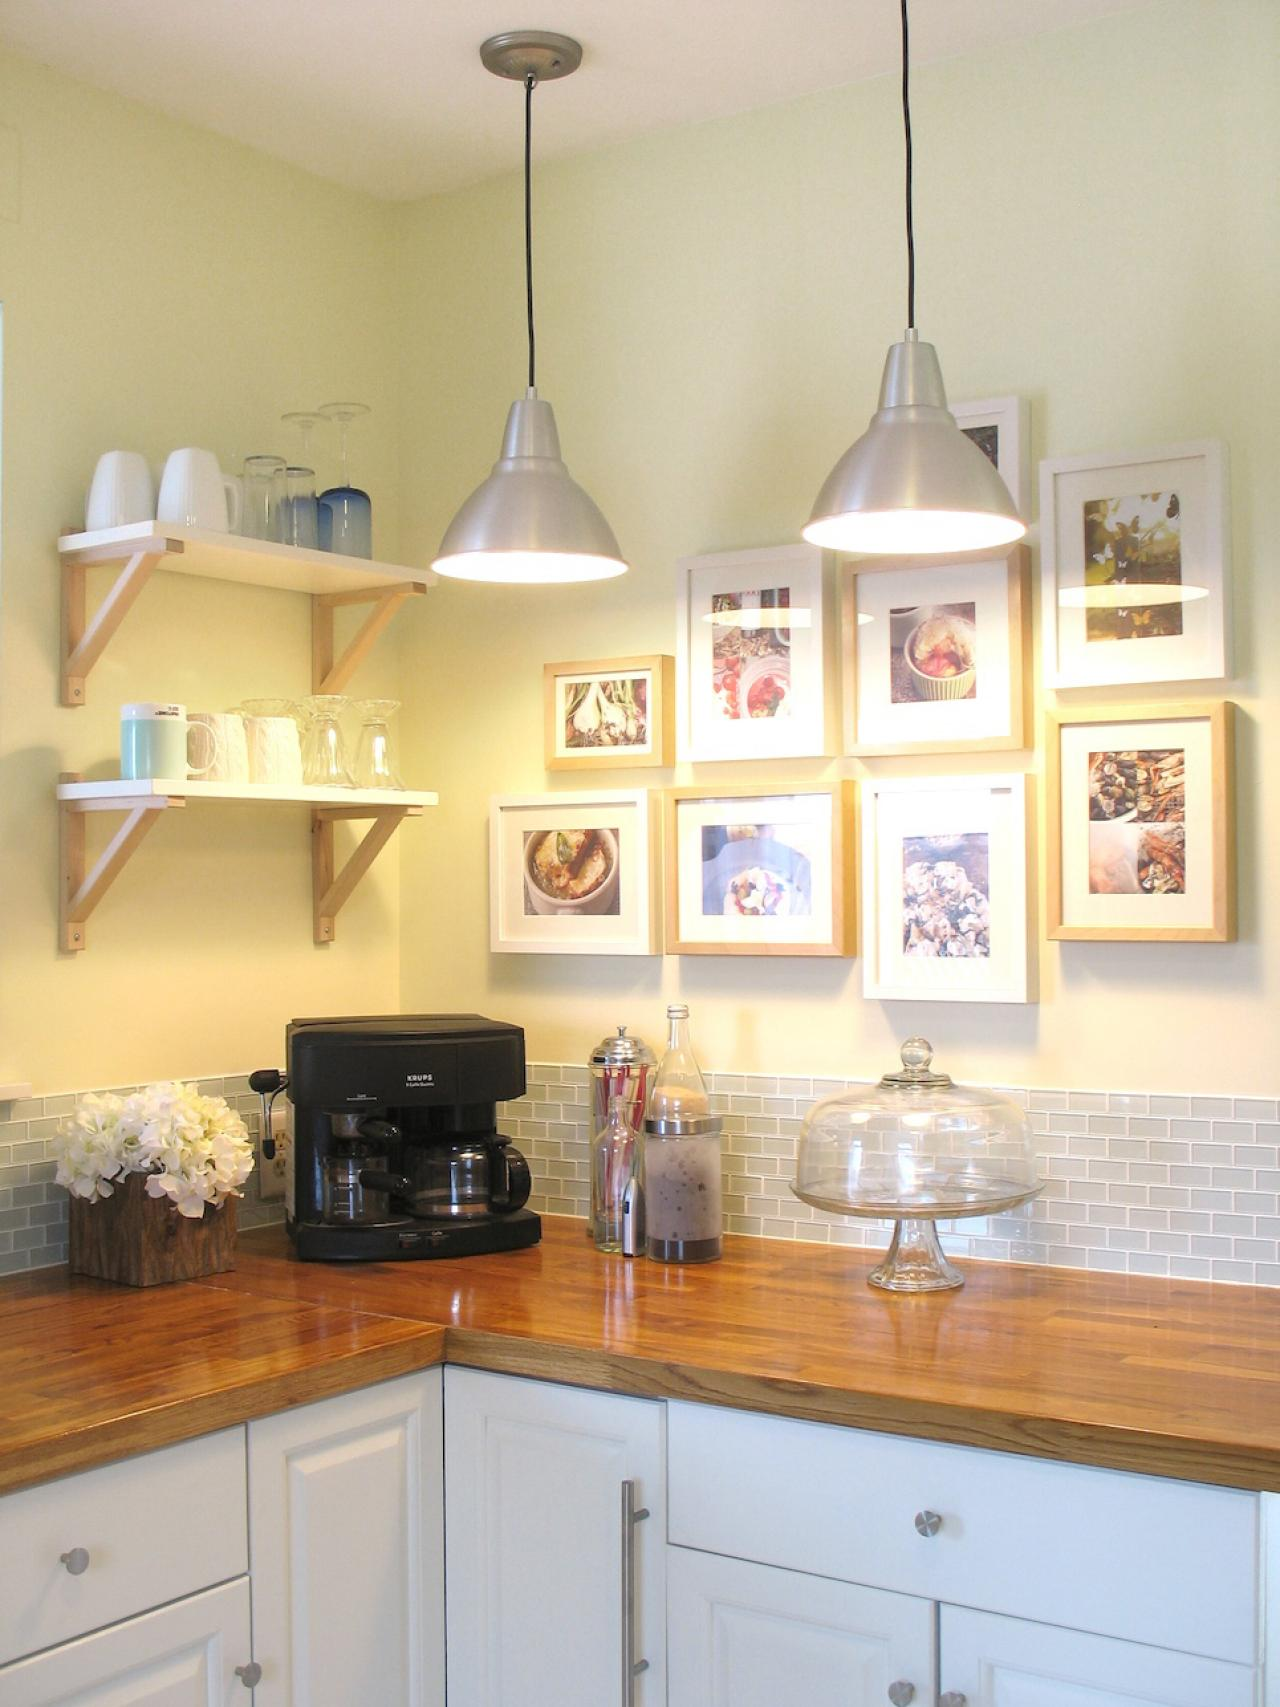 Warm Paint Colors For Kitchens Pictures Ideas From Hgtv: What Colors To Paint A Kitchen: Pictures & Ideas From HGTV